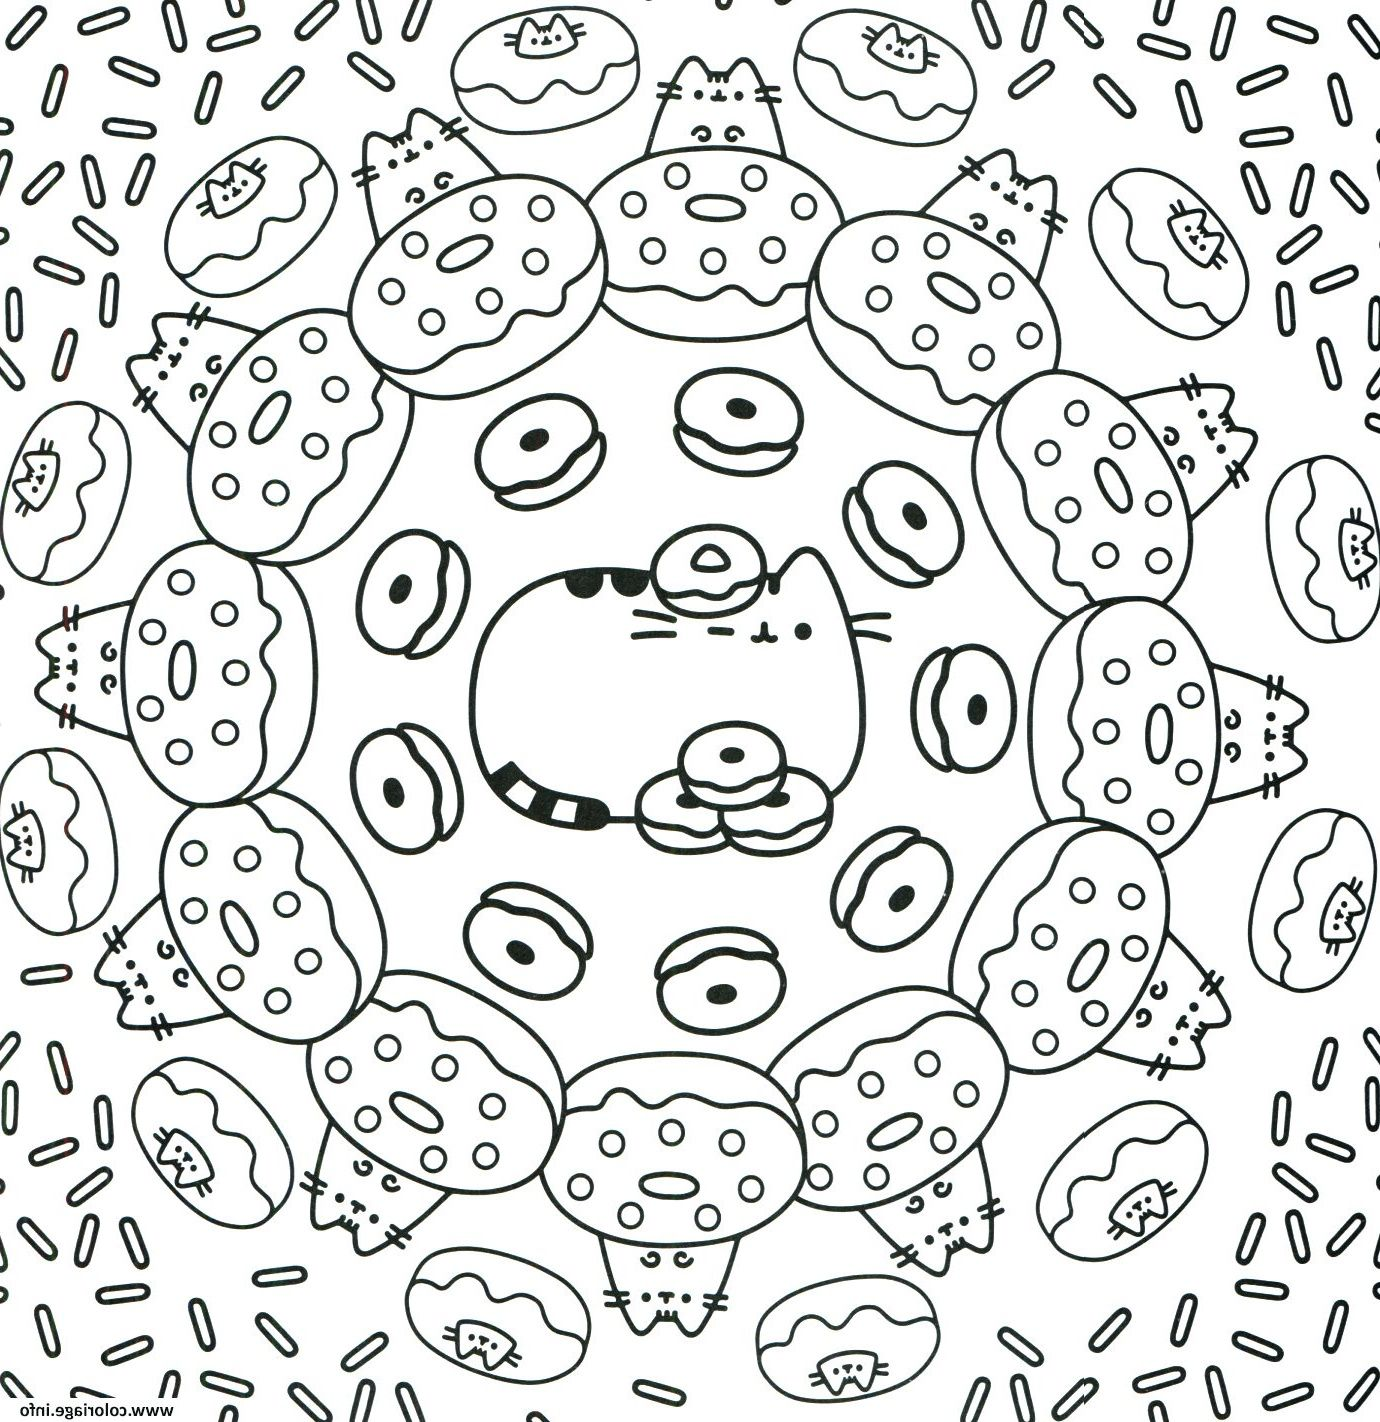 pusheen the cat donuts pattern coloriage dessin | Unicorn ...